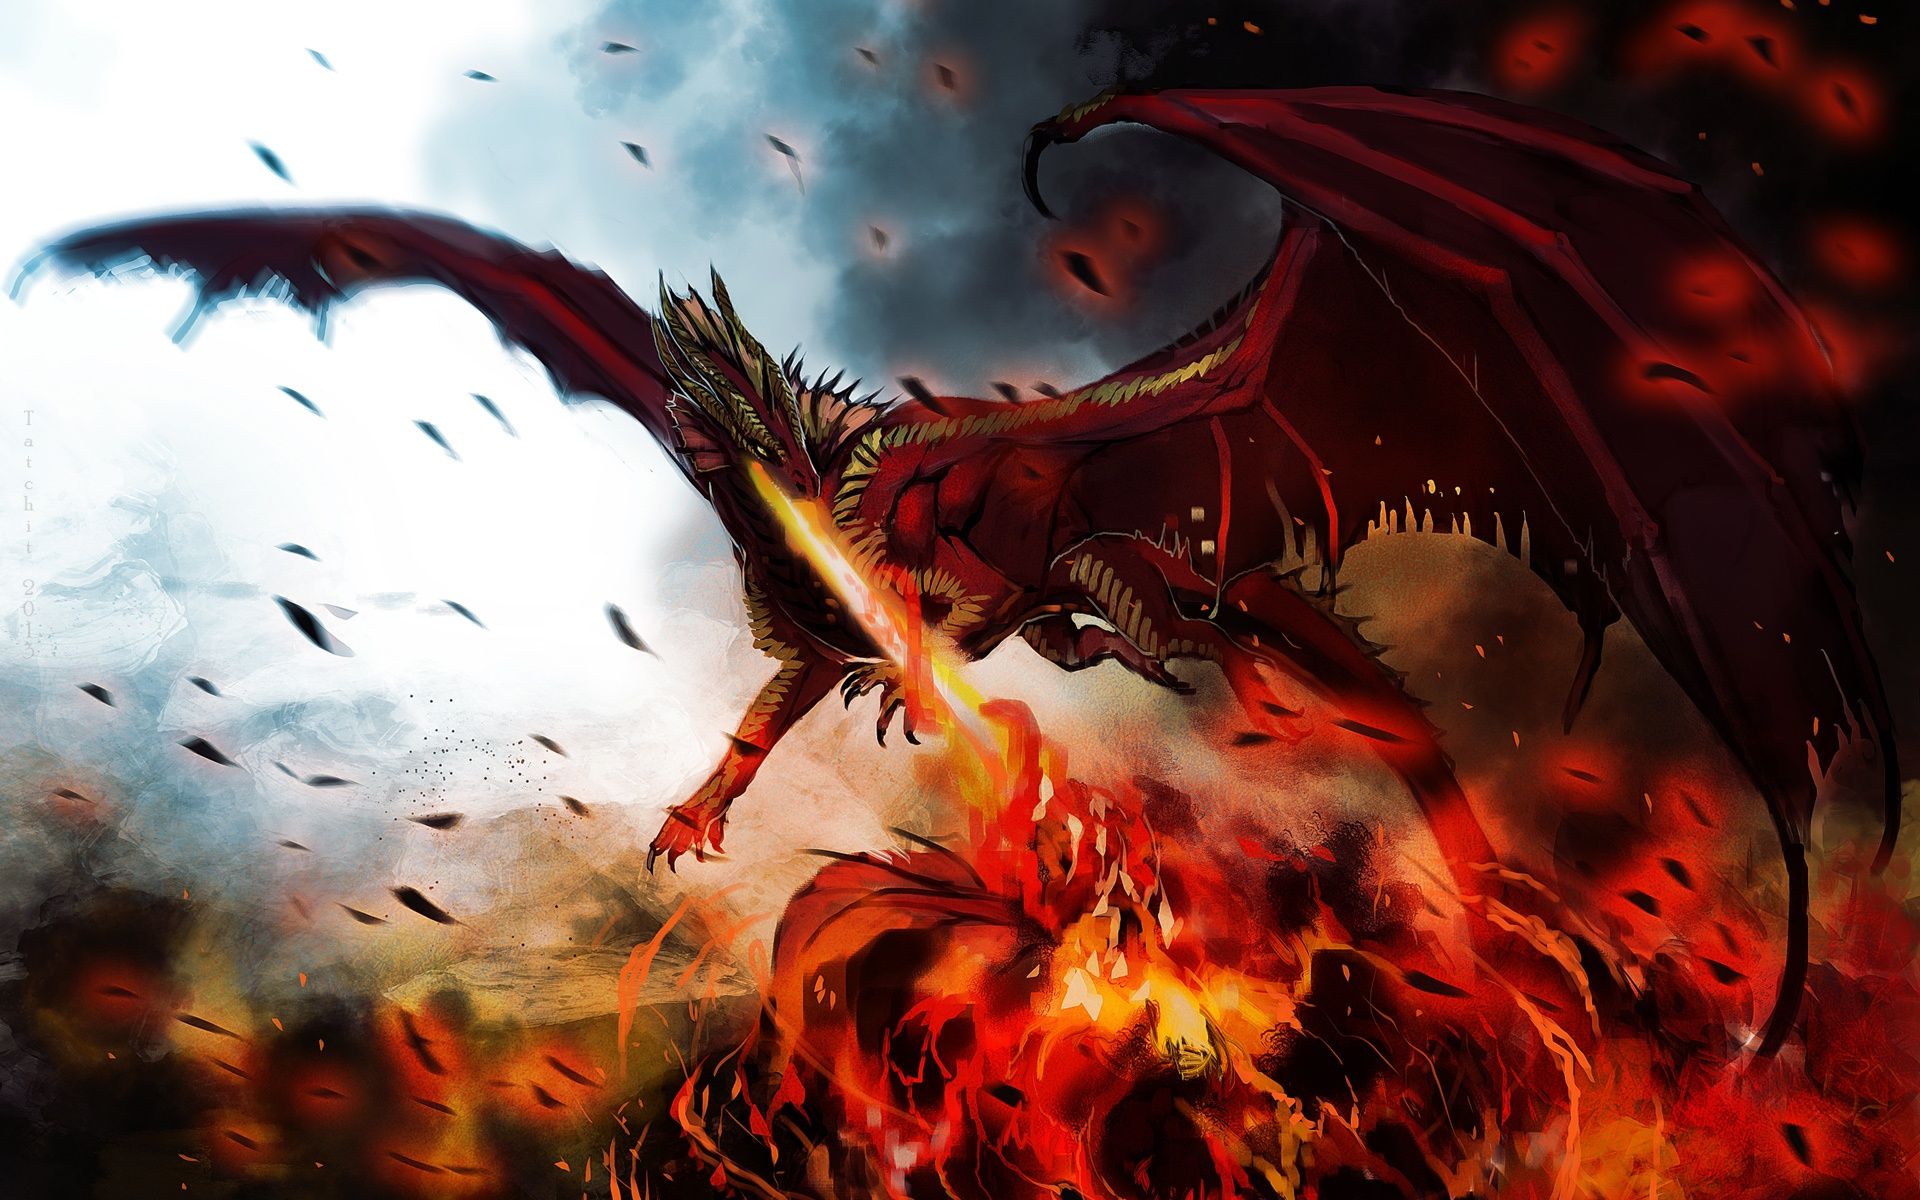 Wallpaper Art Painting Dragon Monster Wings Fire 1920x1200 Hd